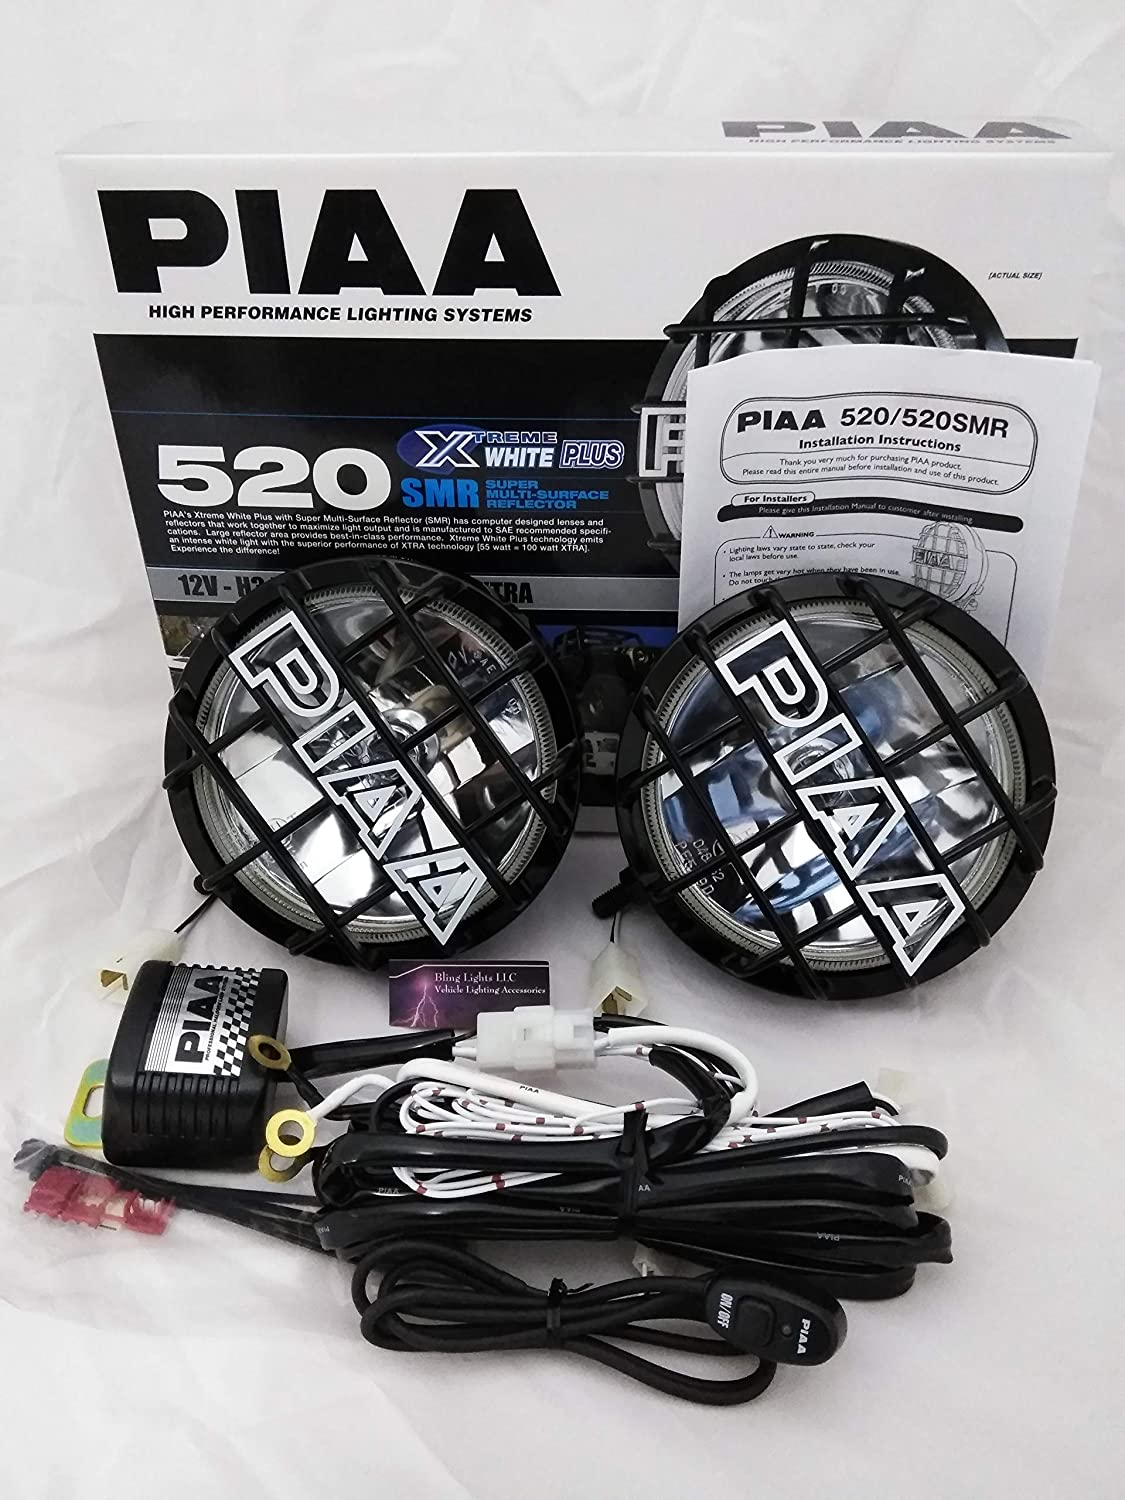 Piaa Lamp Wiring Diagram on hiniker wire harness diagram, piaa relay diagram, fisher plow relay diagram, auto on off switch diagram, piaa lights, fisher lighting diagram,